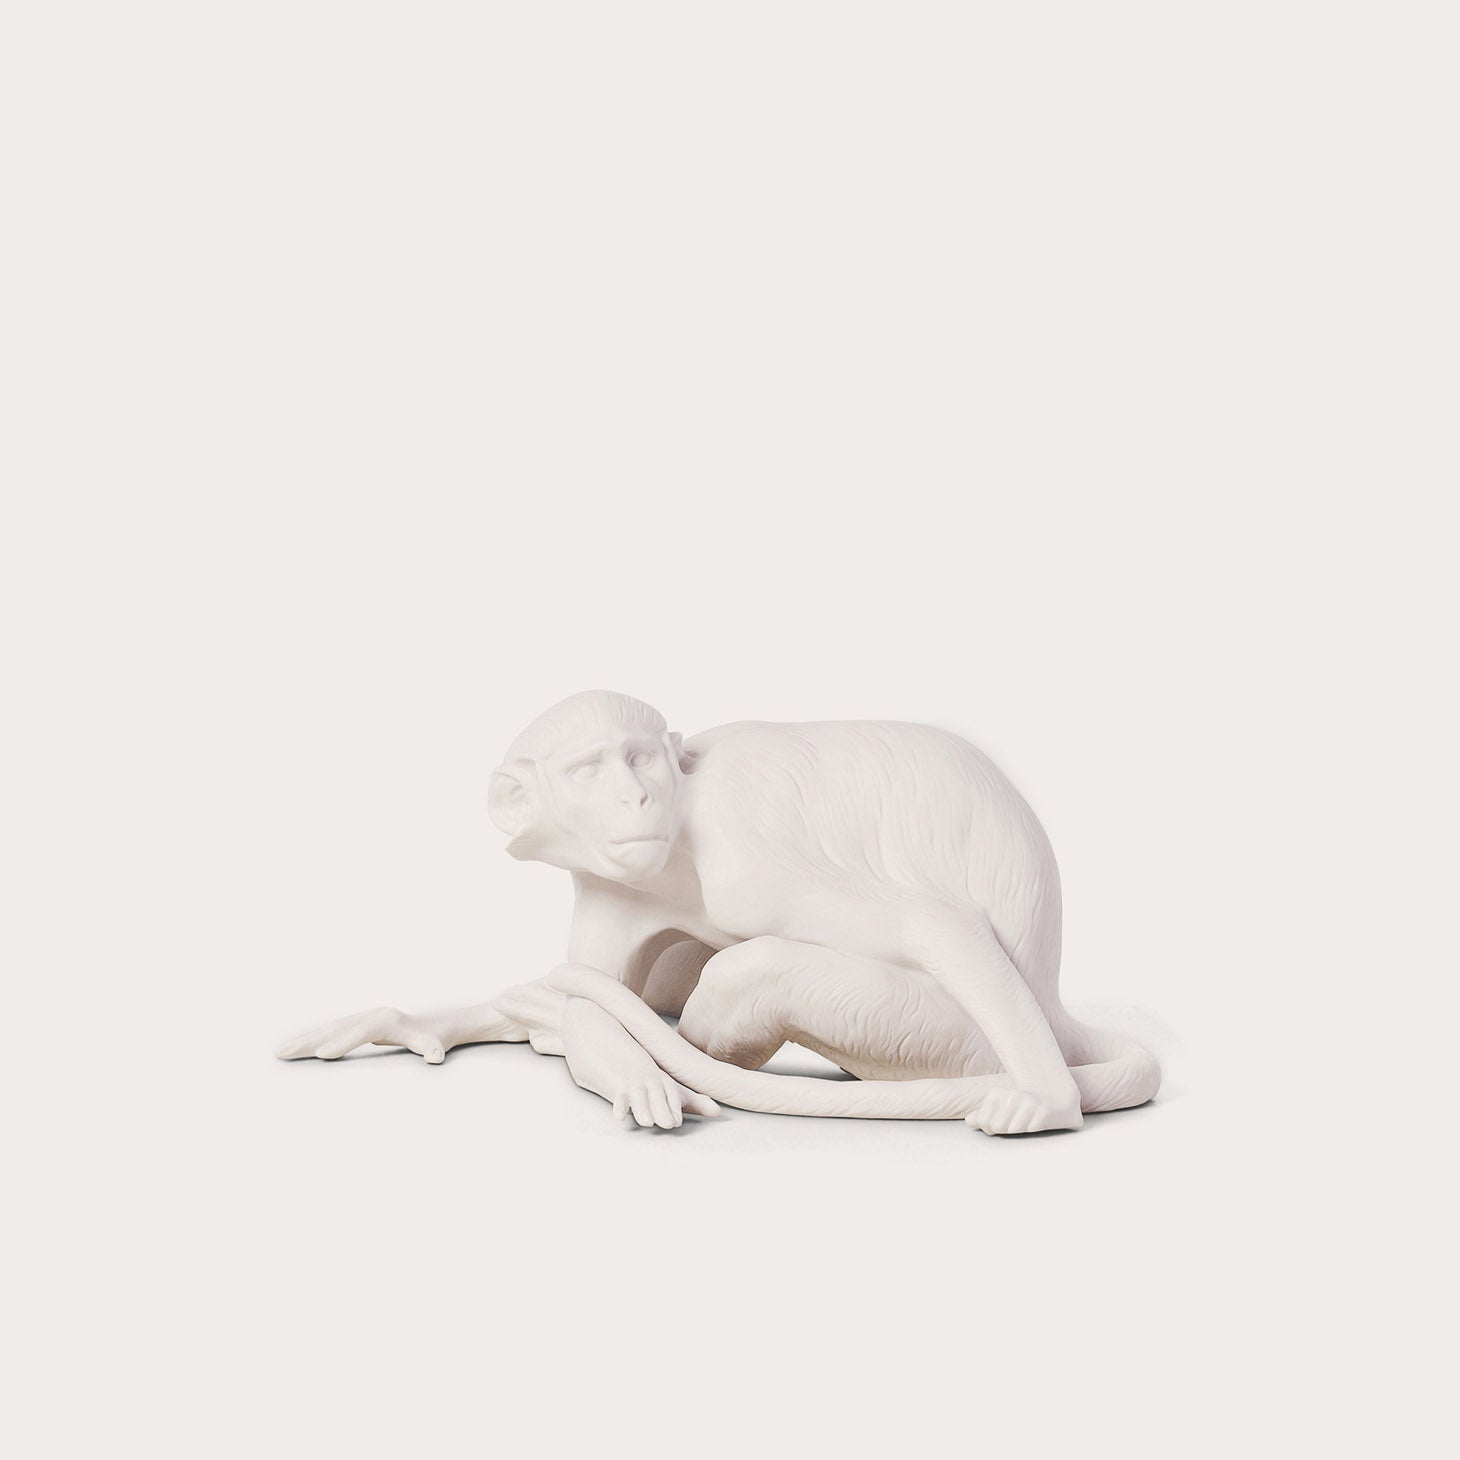 Animals-Monkey Accessories Nymphenburg Designer Furniture Sku: 542-100-10022